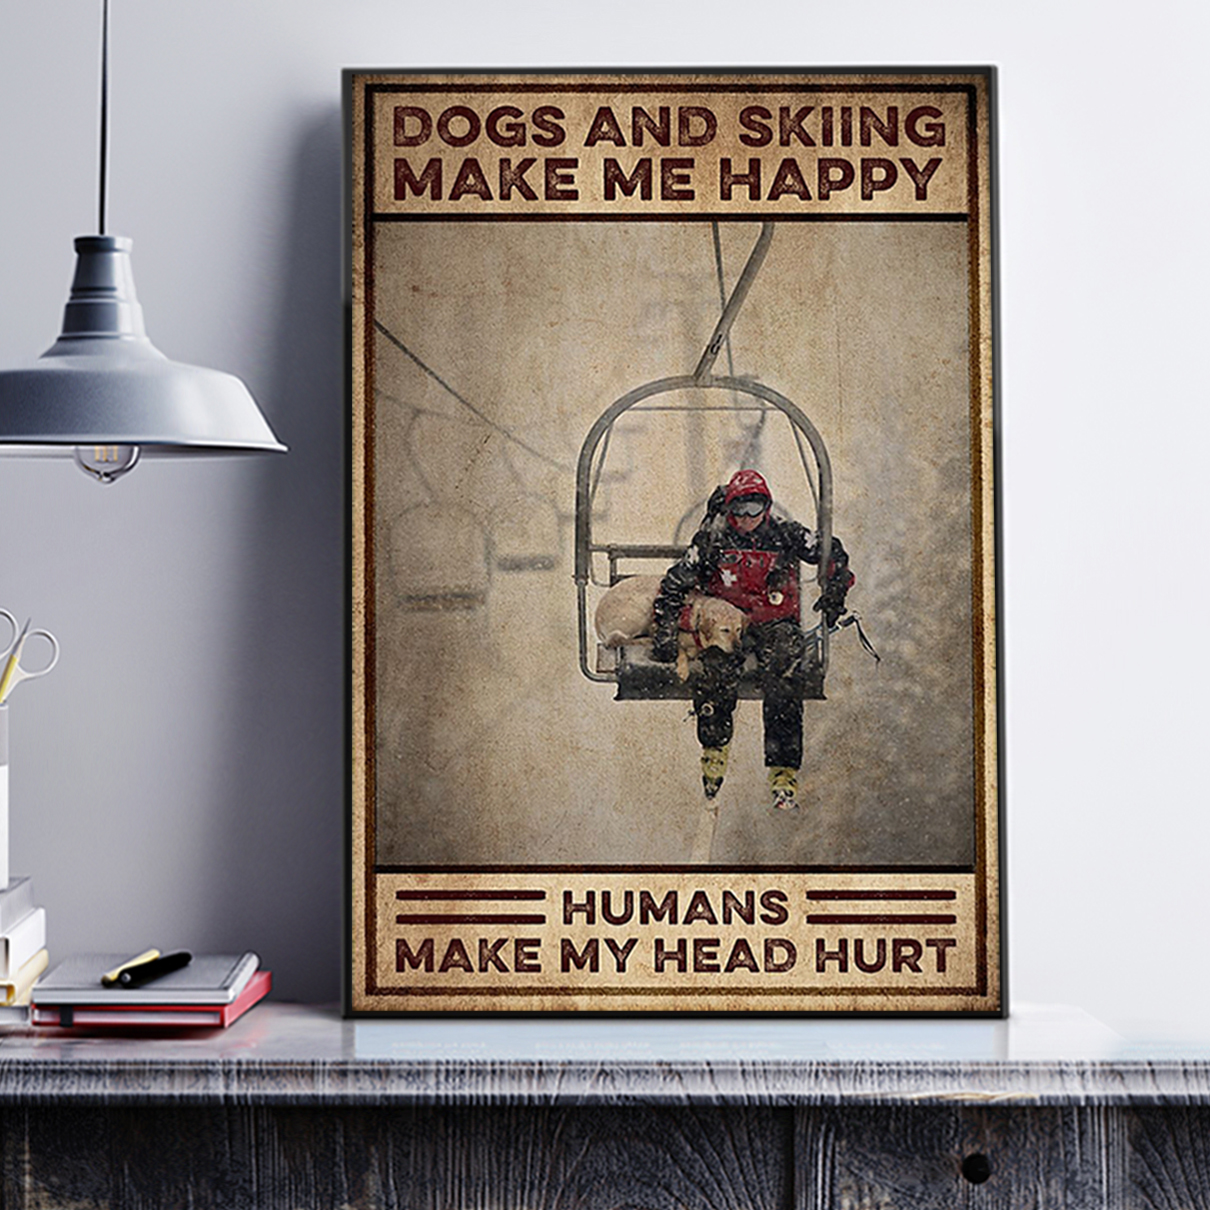 Dogs and skiing make me happy humans make my head hurt poster A1